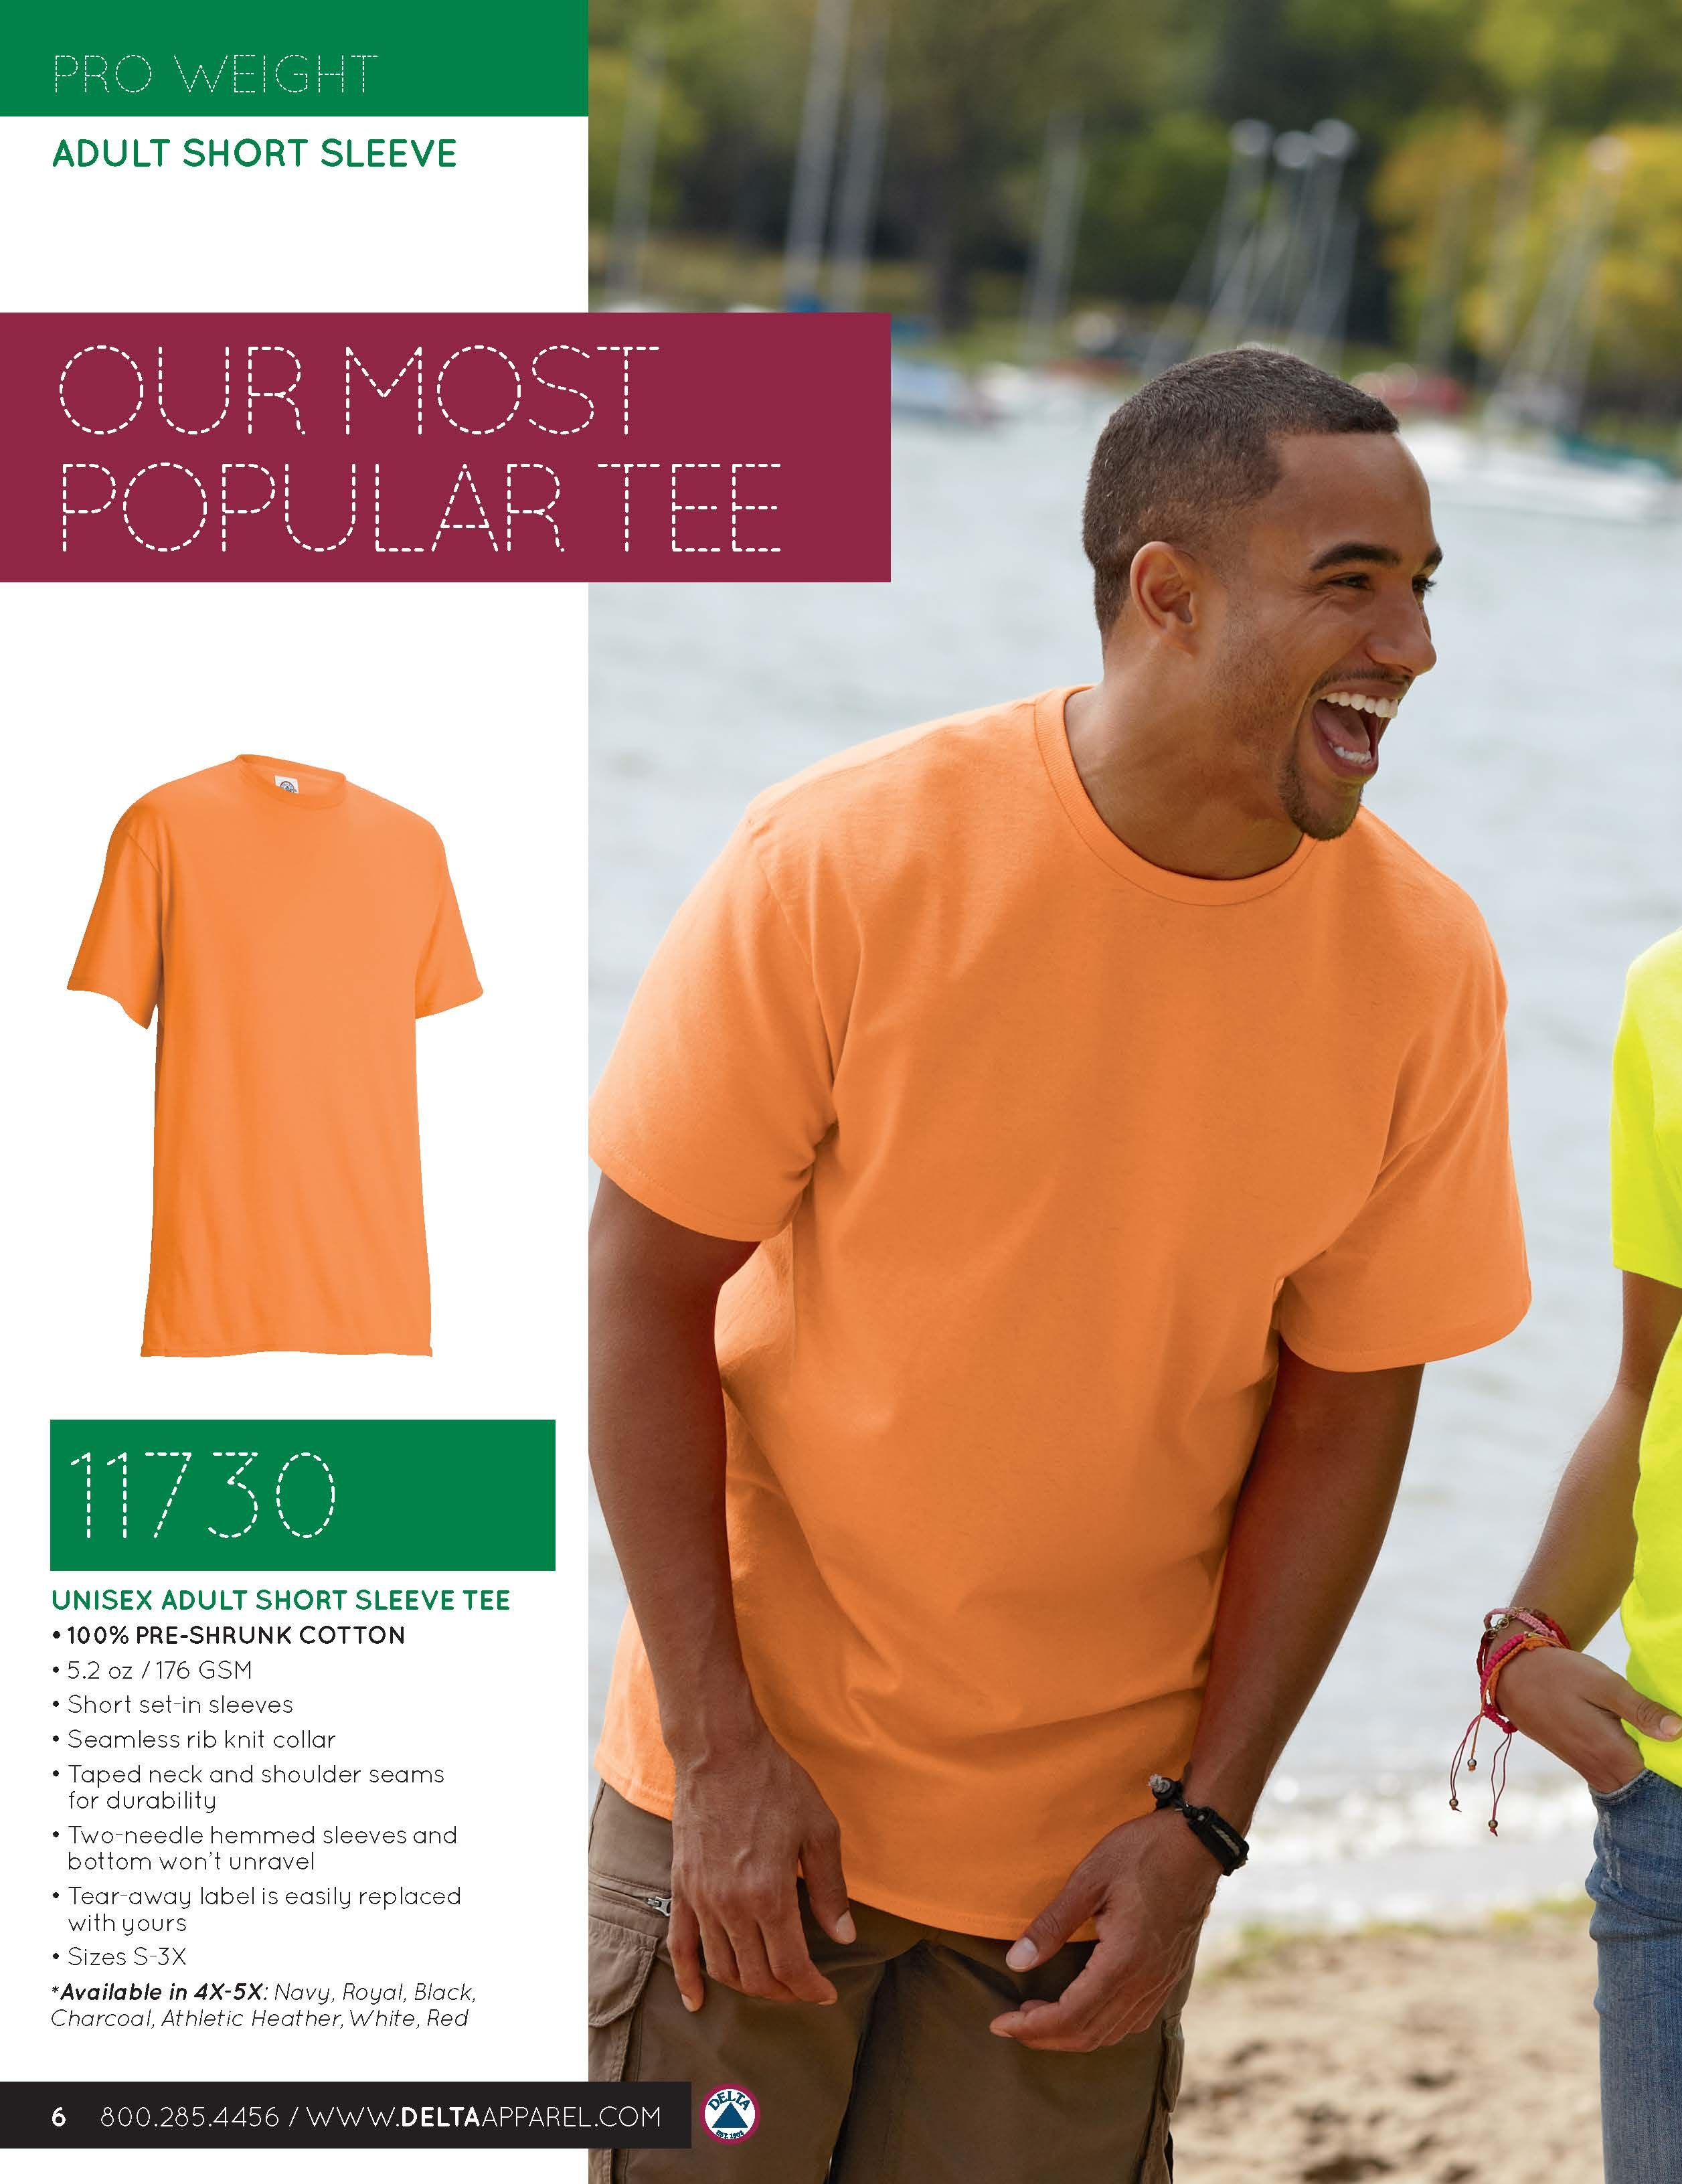 a133734a3 Pro Weight Adult Tee - 11730. Most Popular! Pro Weight Adult Tee - 11730  Catalog, Short Sleeve ...